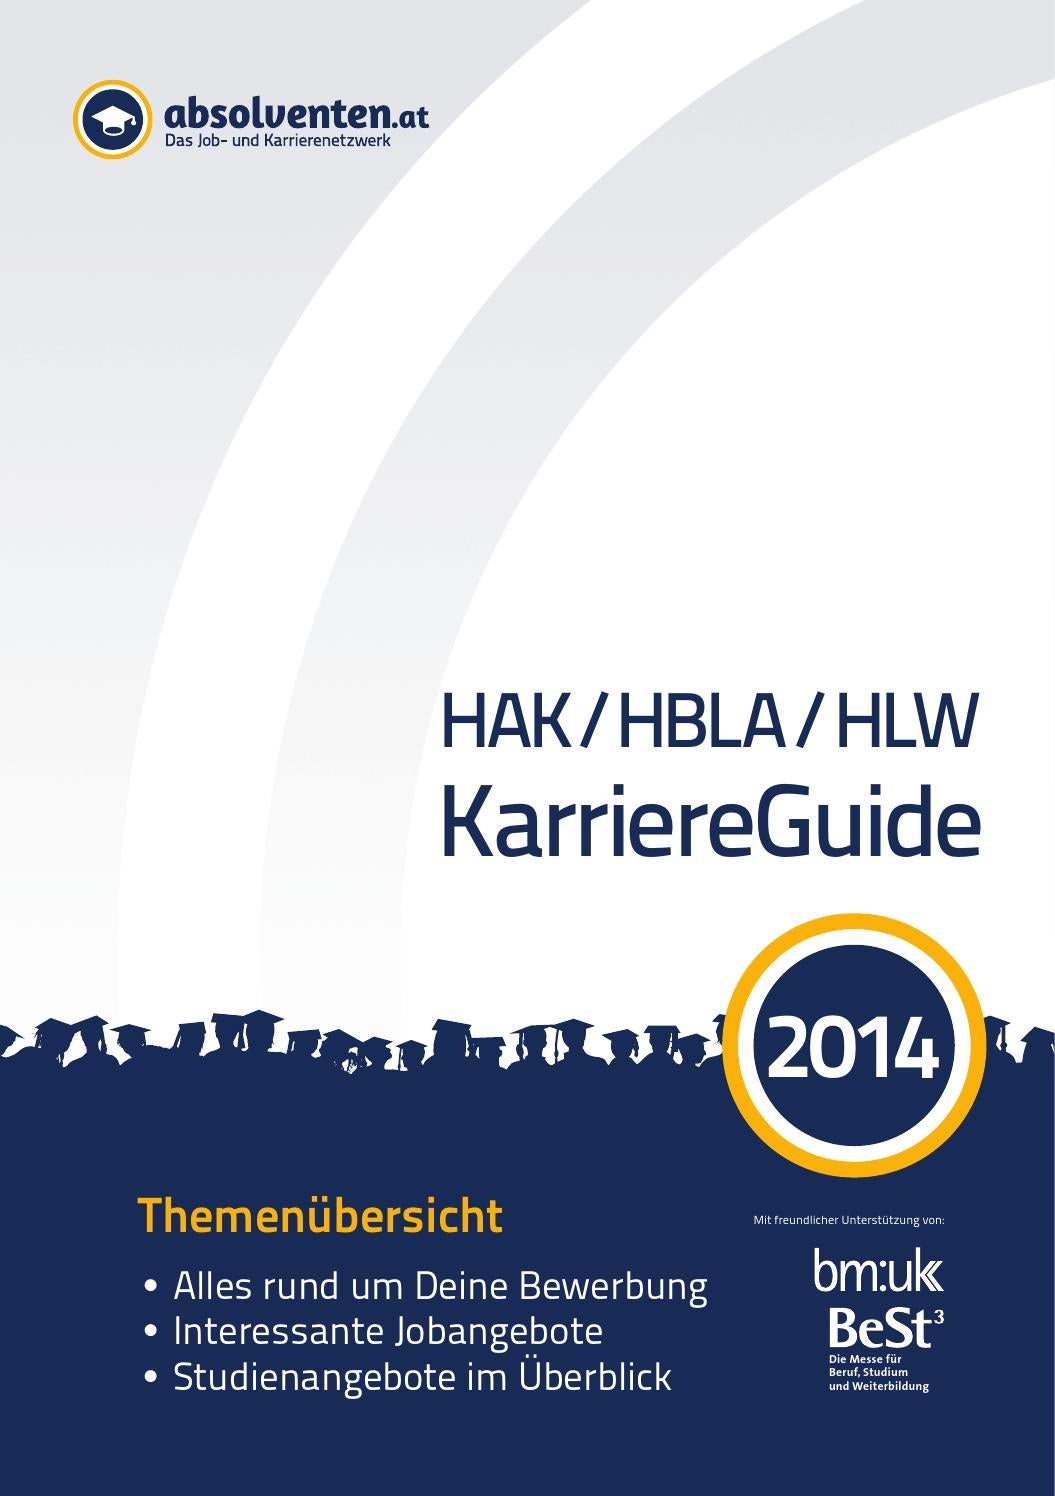 HAK / HBLA / HLW KarriereGuide 2014 by Business Cluster Network GmbH - issuu